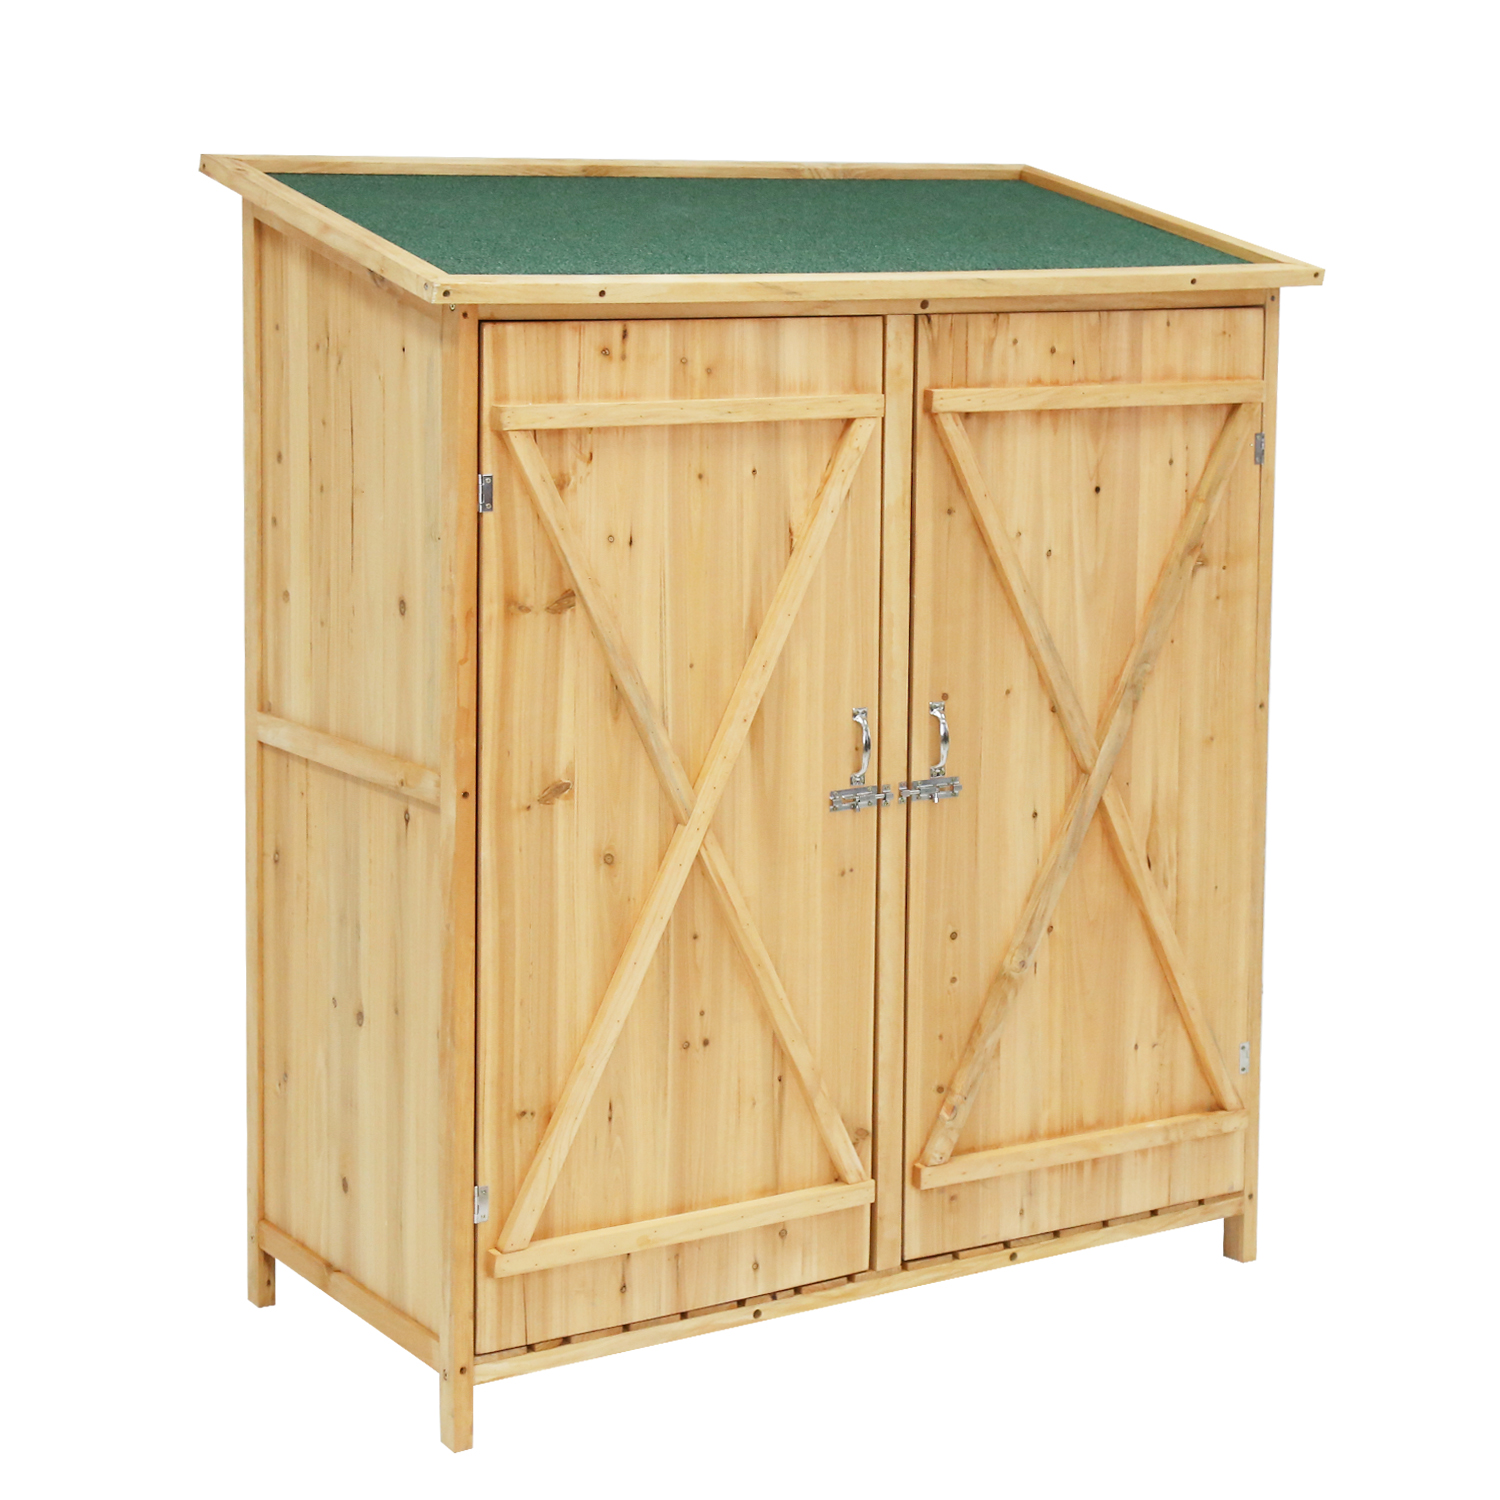 72d44fd3a90 Details about Garbage Storage Refuse Shed Horizontal Hidden Trash Can  Organizer Bin Outdoor